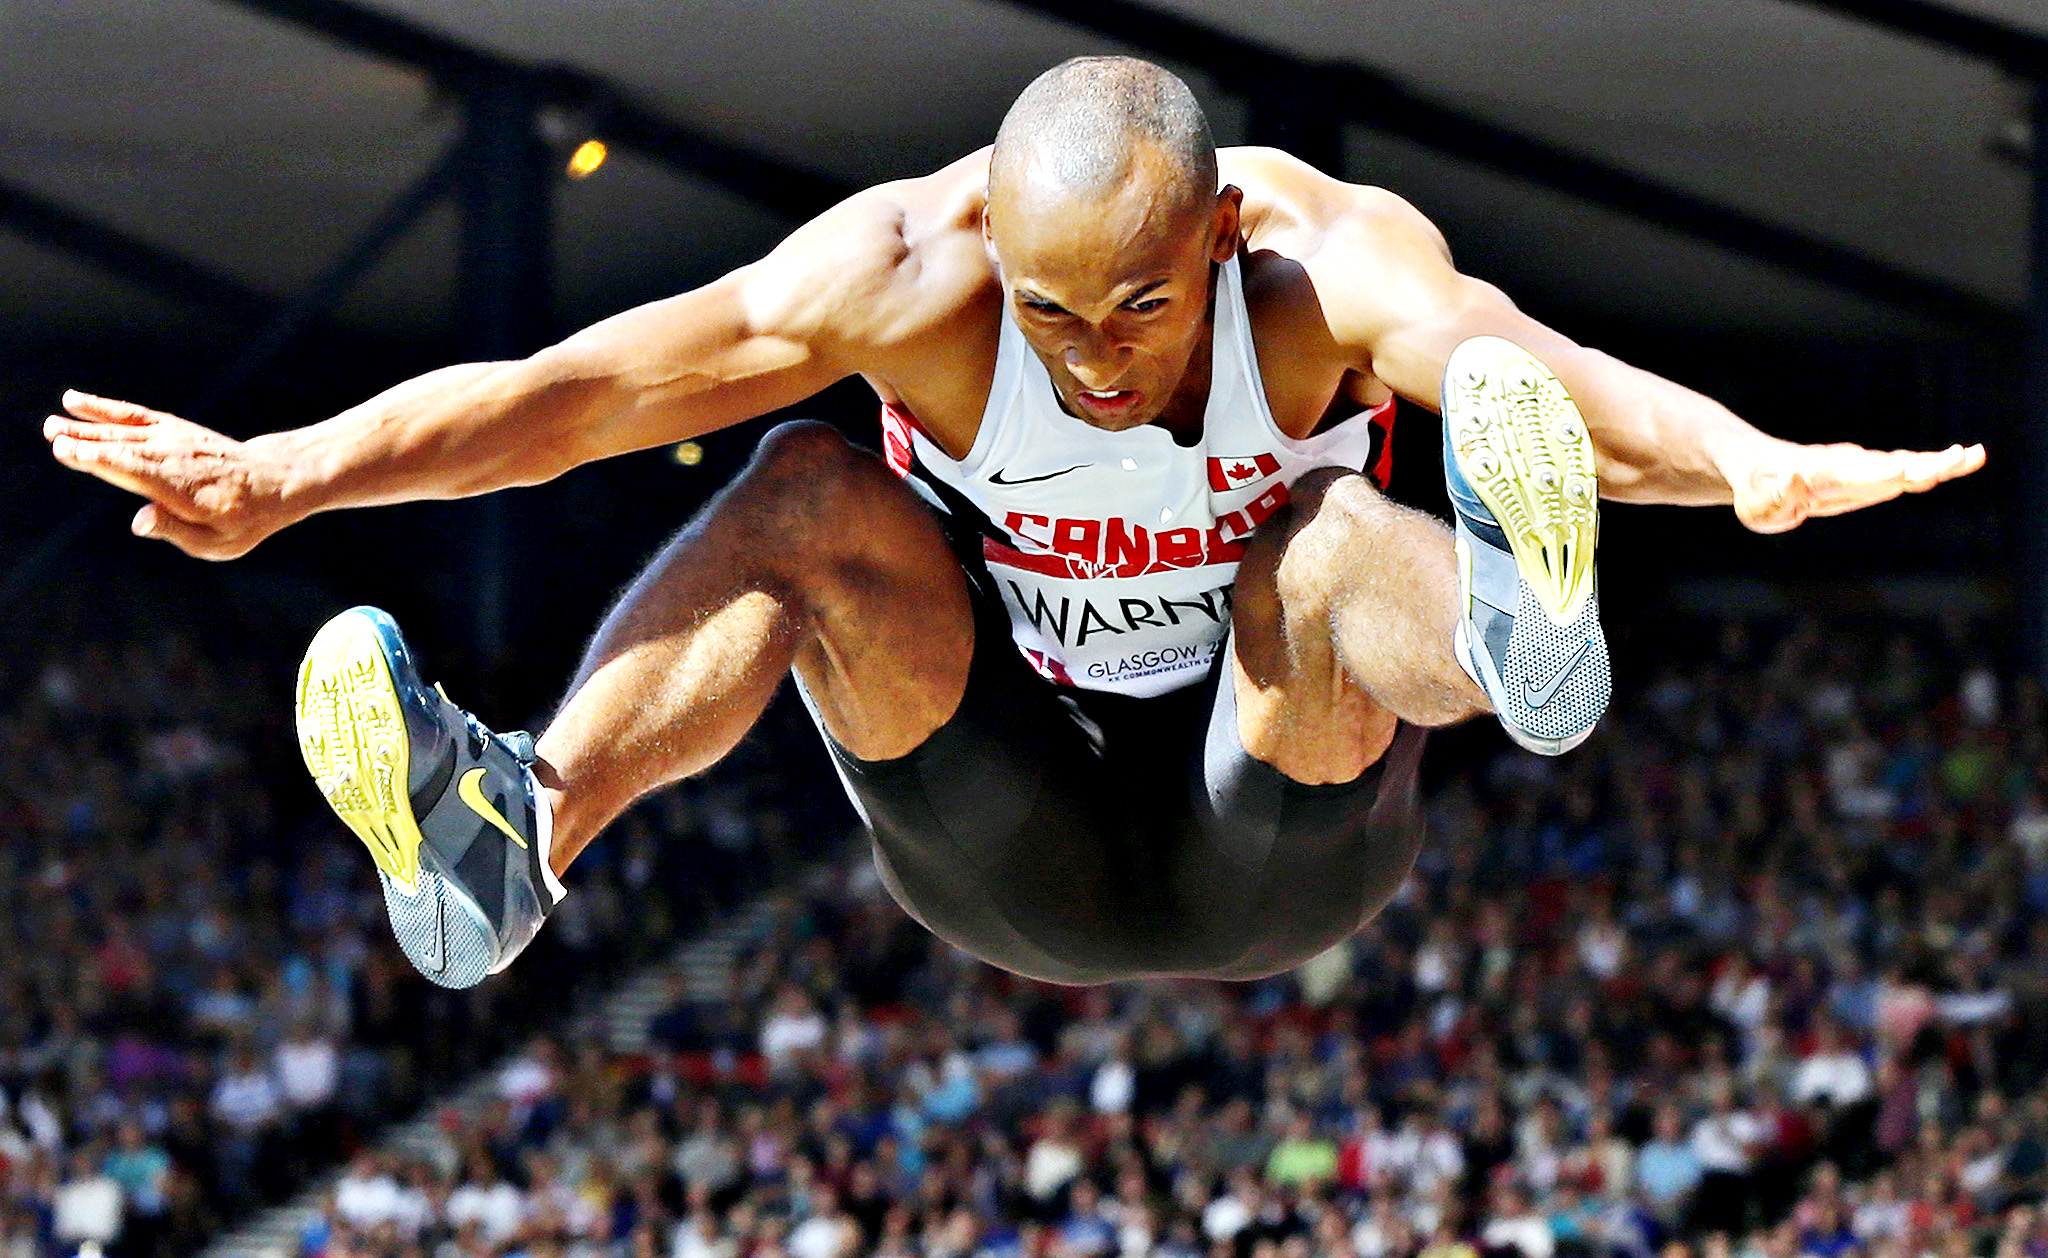 Canada's Damian Warner competes in the Men's Decathlon Long Jump at the 2014 Commonwealth Games in Glasgow, Scotland, July 28, 2014.